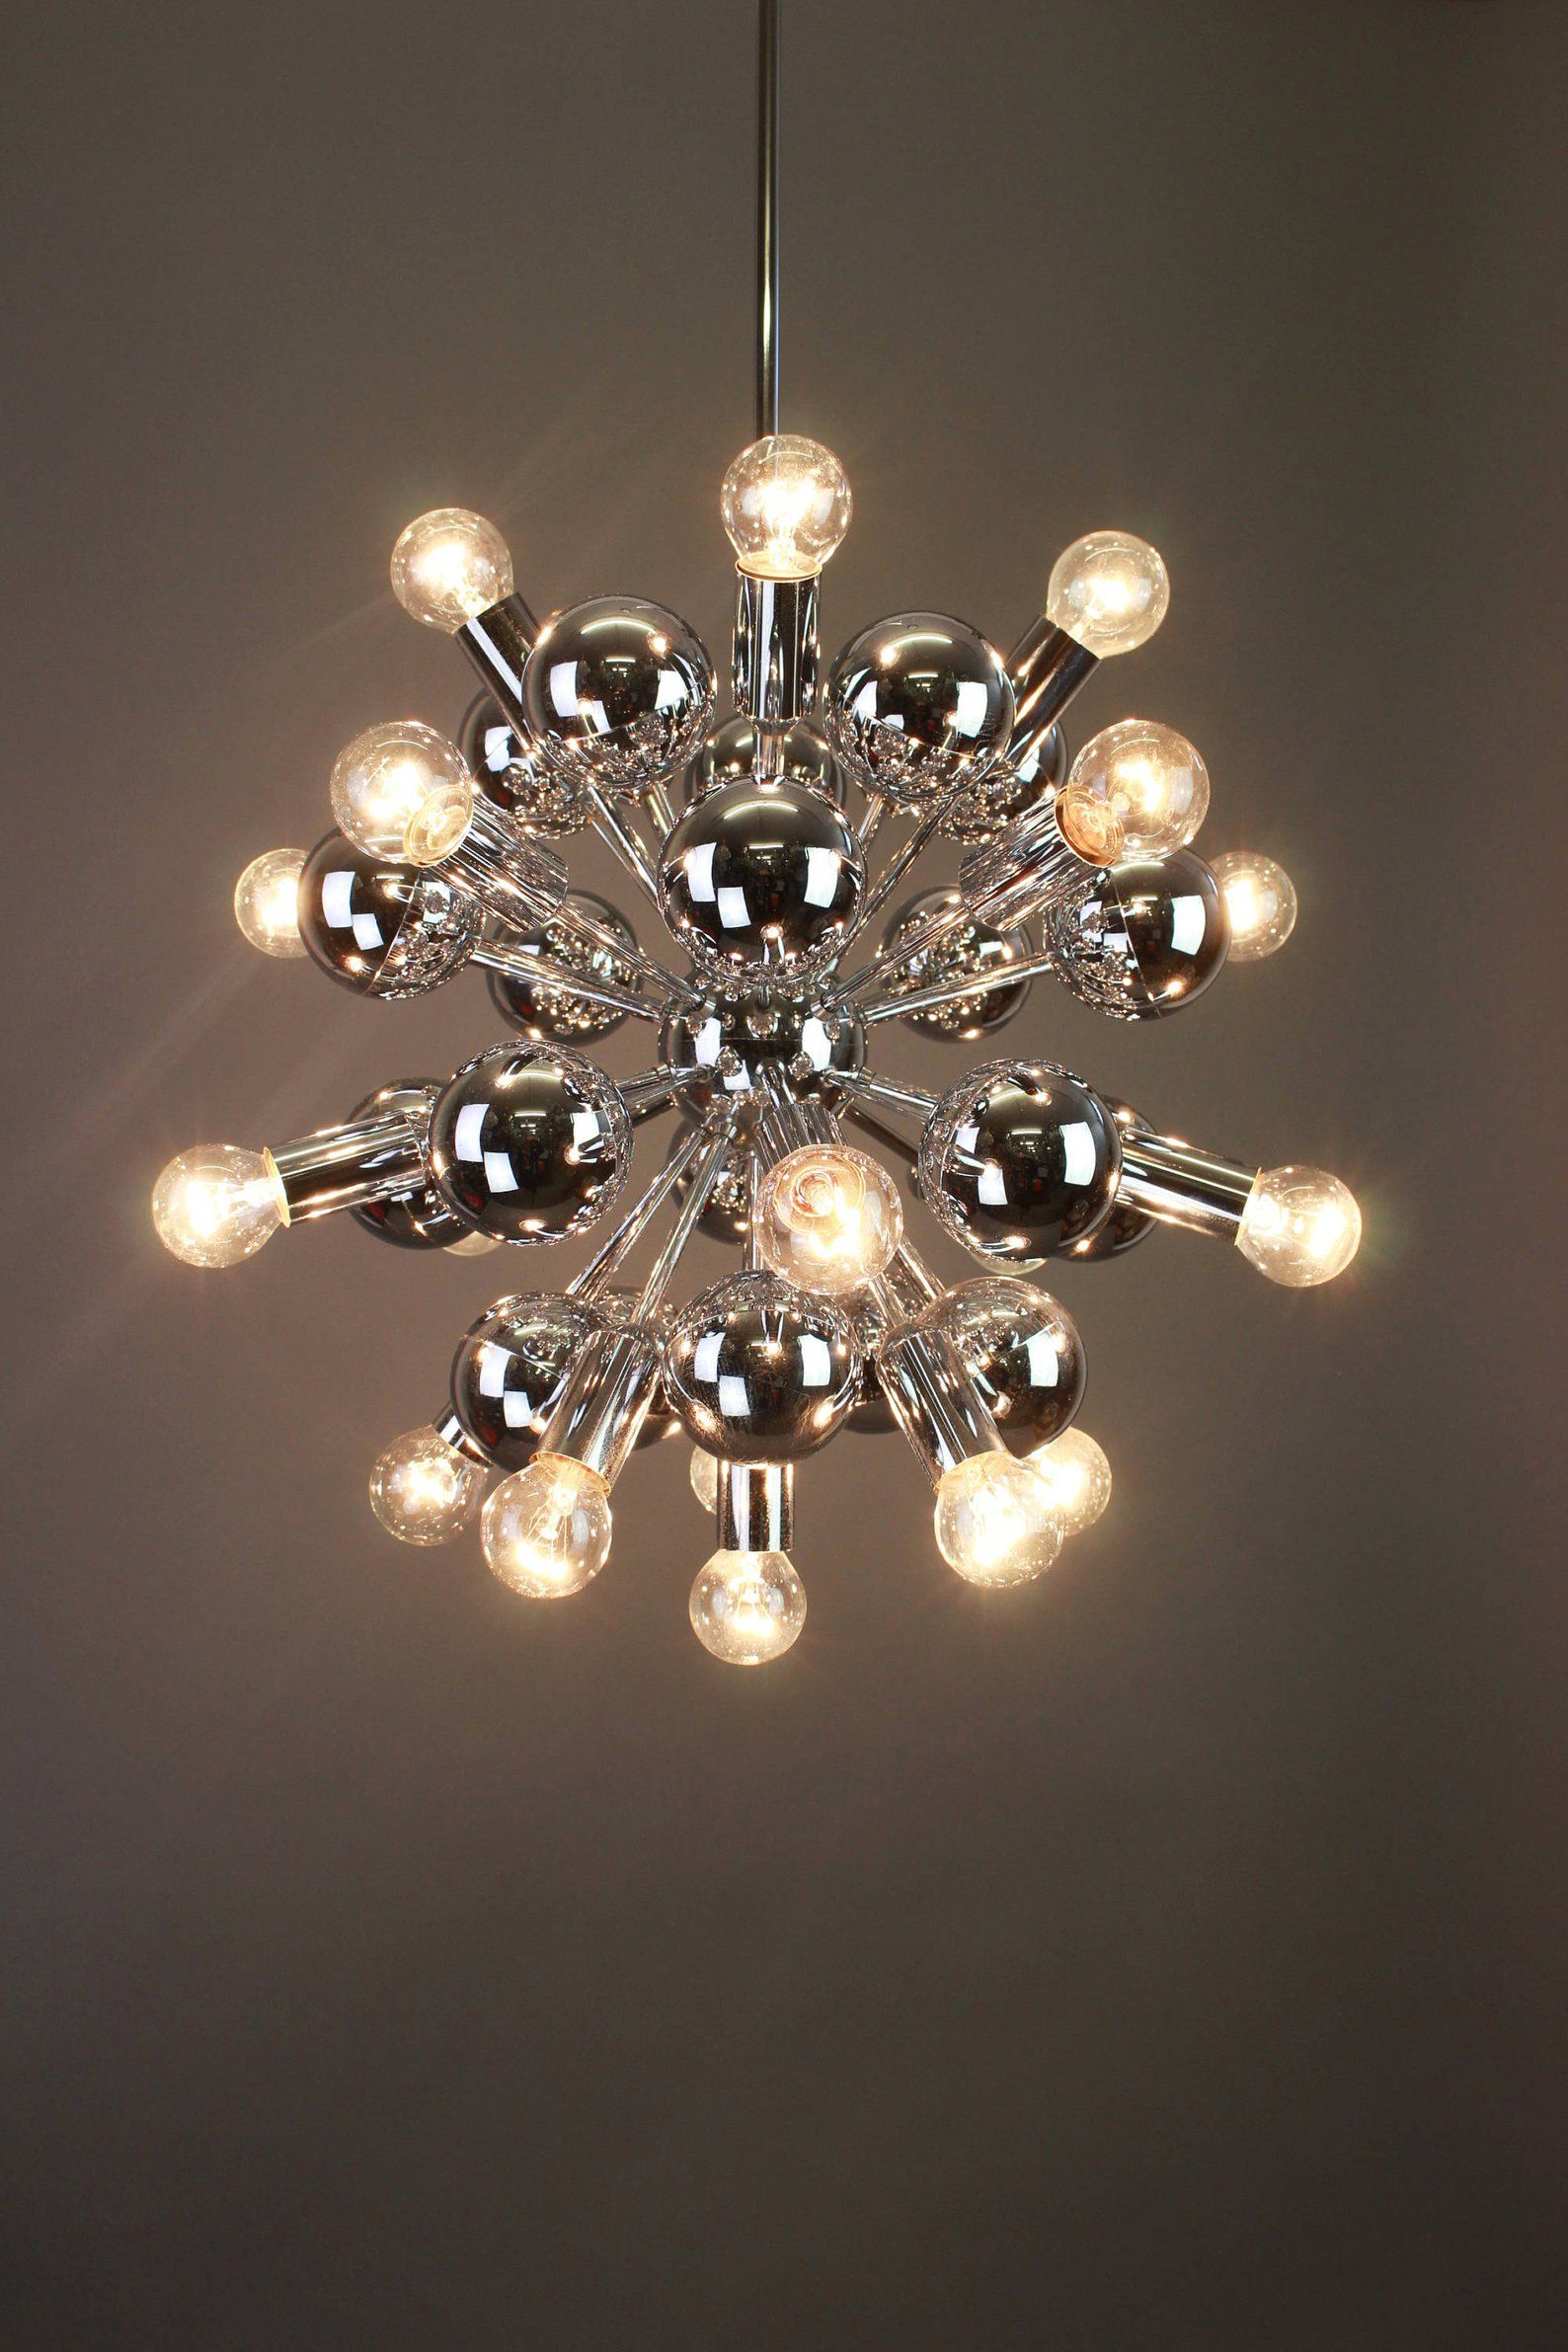 Large Chrome Vintage Sputnik Chandeliercosack Germany regarding Asher 12-Light Sputnik Chandeliers (Image 18 of 30)